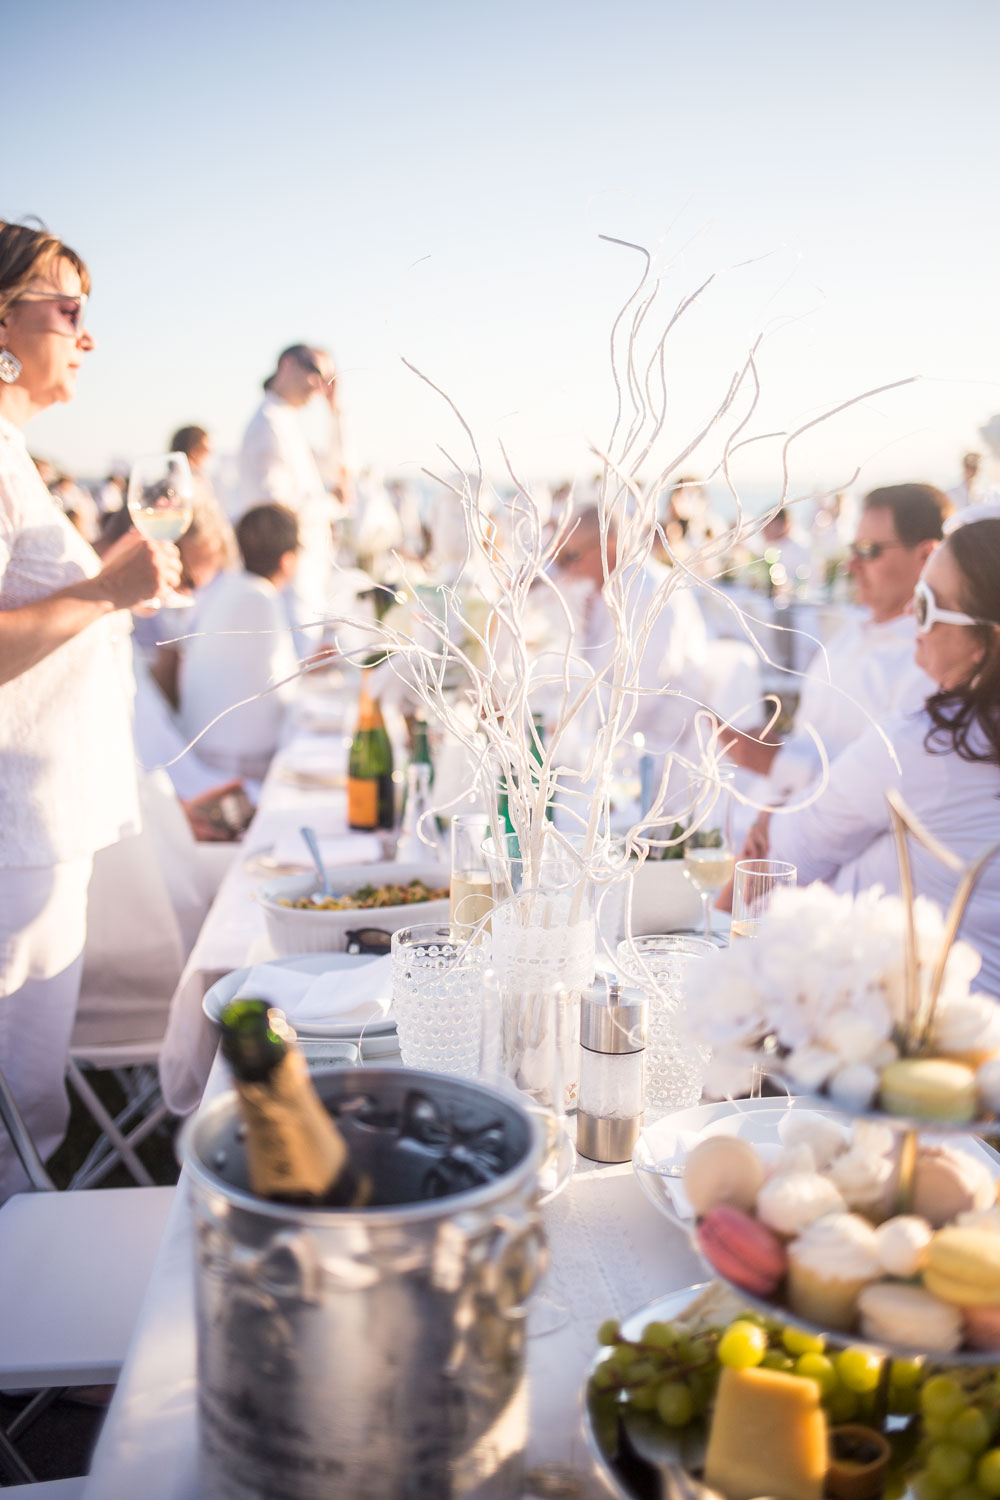 Le Diner En Blanc Seattle Hello Rigby Seattle Fashion Beauty Blog For Budget Friendly Style